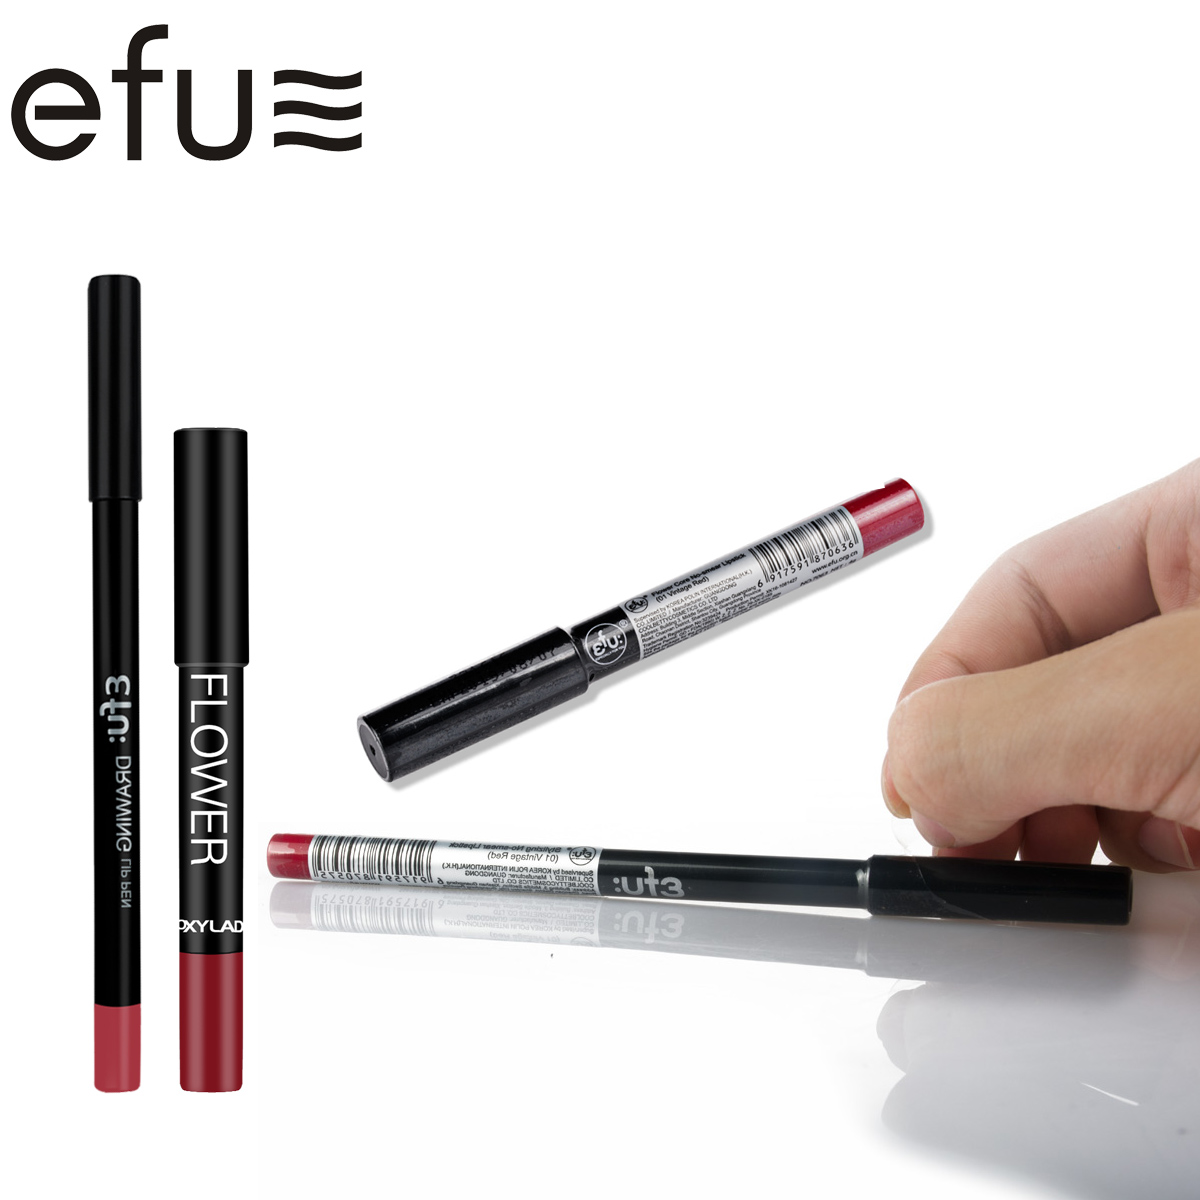 1Set Long Lasting Matte Lipstick Suits 15 Styles Waterproof Lip liner Pencil 1 8g 4g High Quality Makeup Brand EFU EFUL01 in Lipstick from Beauty Health